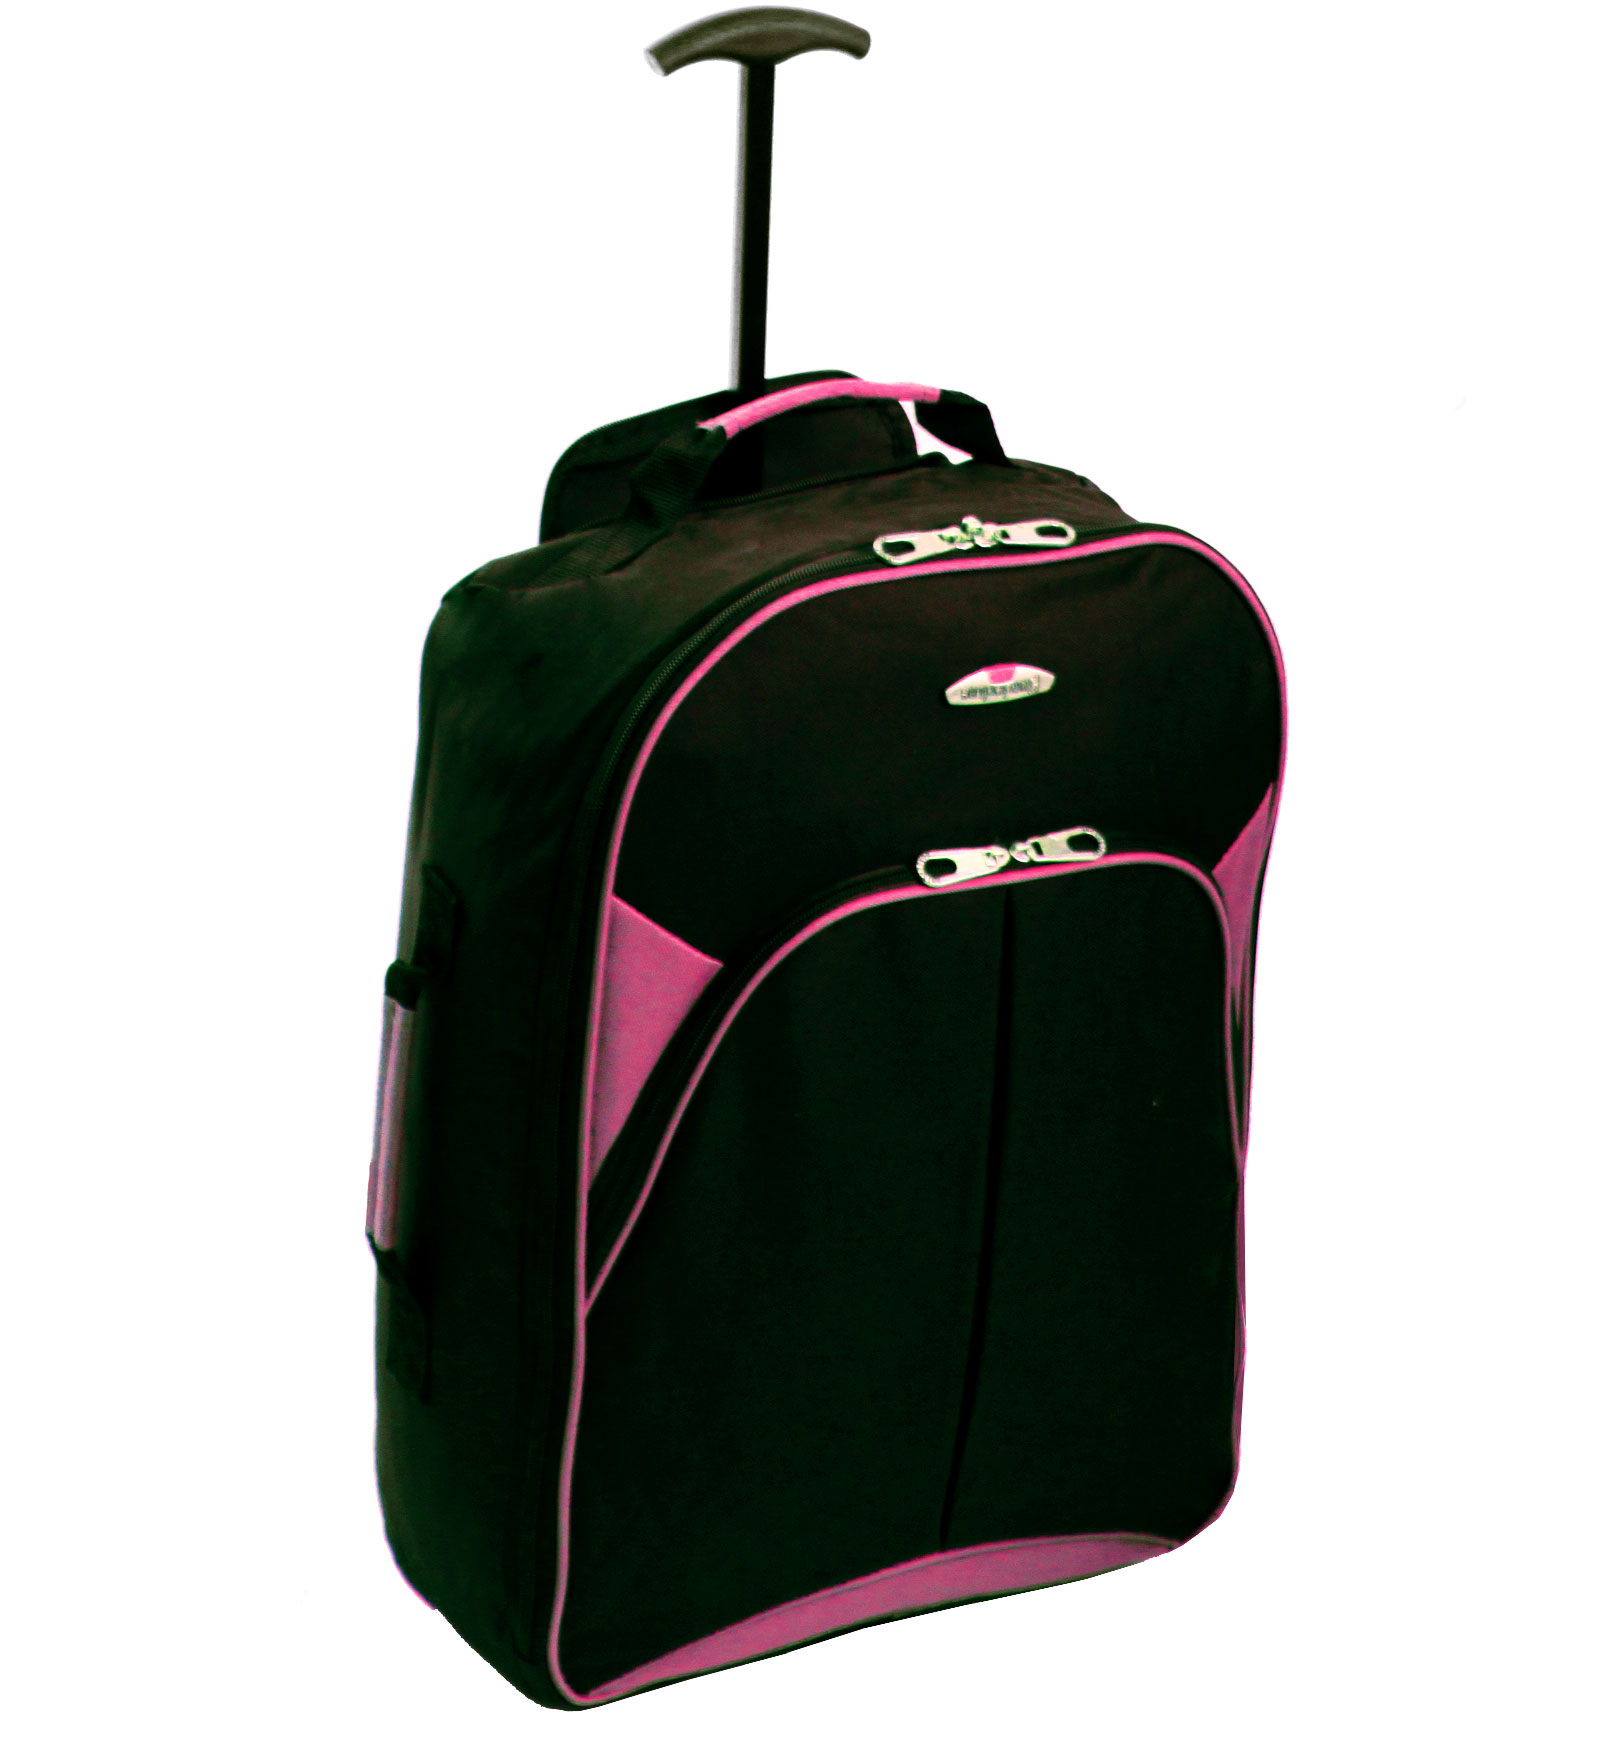 ryanair cabine l ger roues trolley holdall bagages sac dos sac de voyage ebay. Black Bedroom Furniture Sets. Home Design Ideas